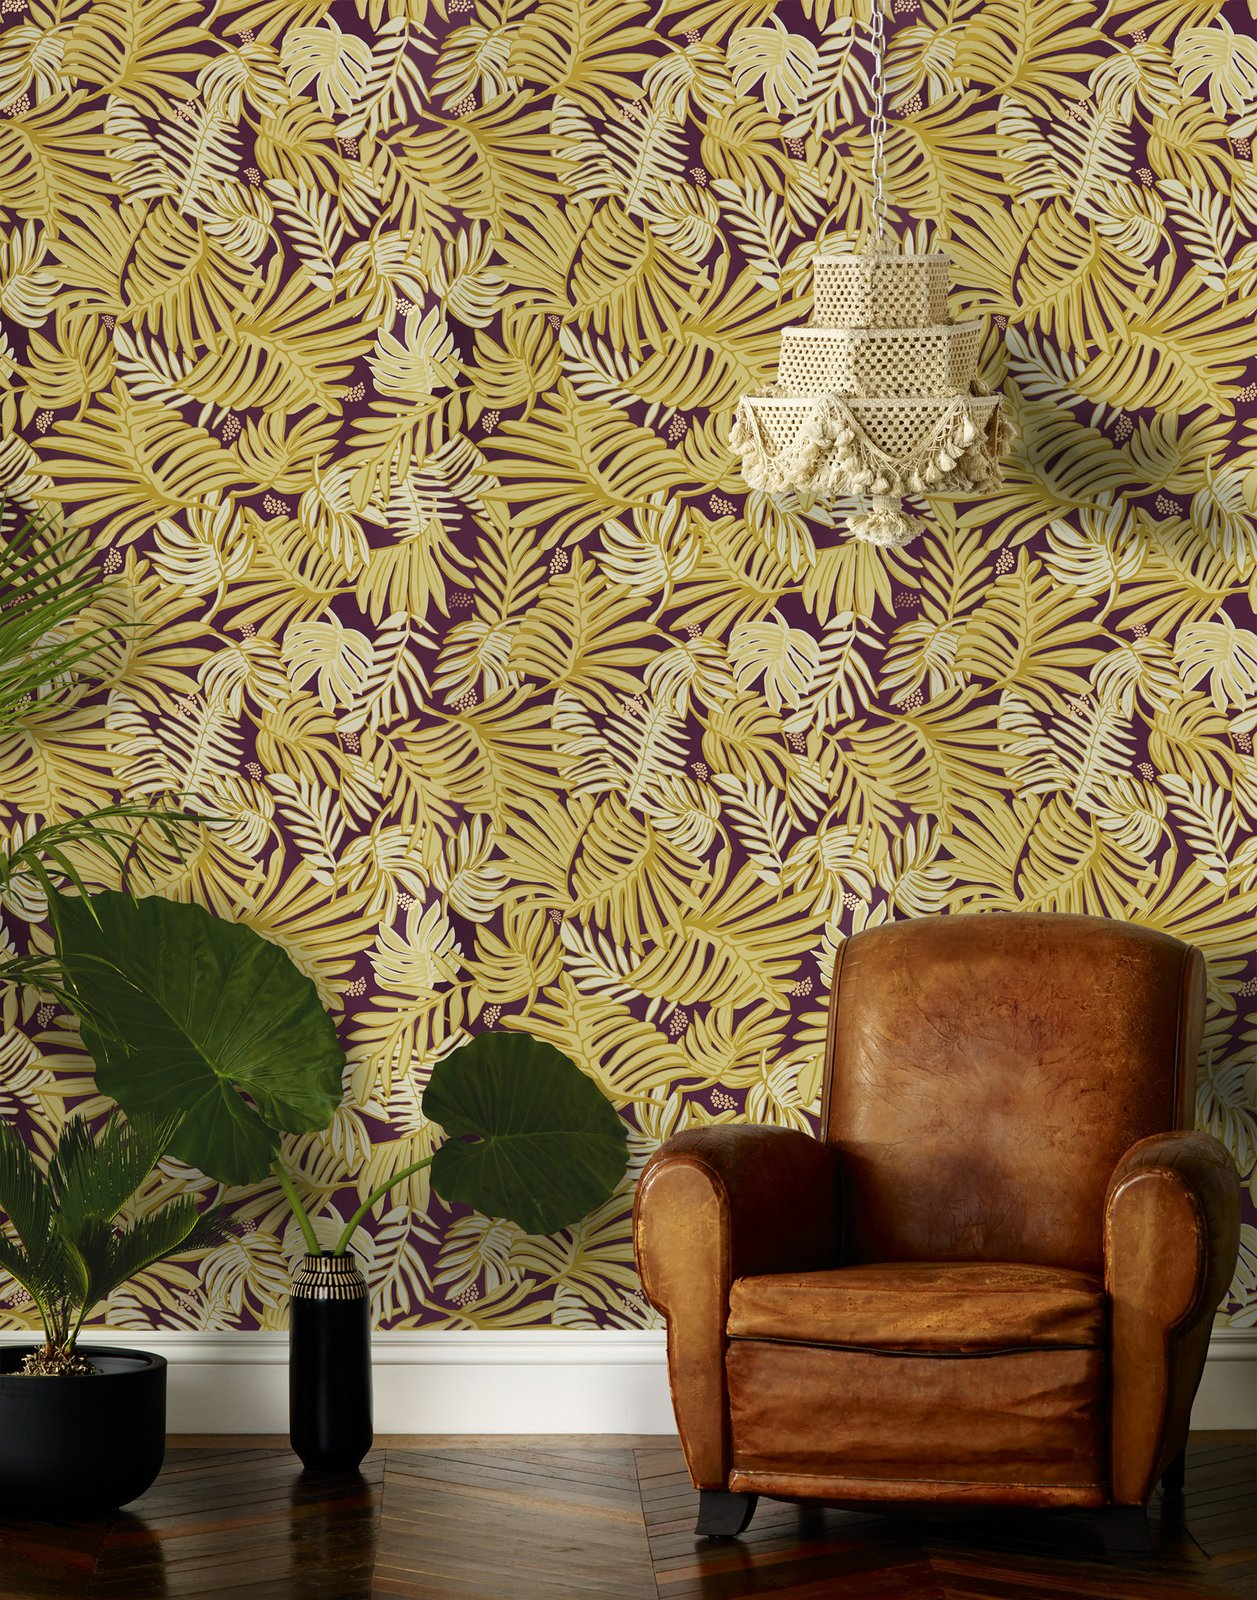 Living Room, Chair, Medium Hardwood Floor, and Pendant Lighting Aja (Aubergine) wallpaper, designed by Justina Blakeney for Hygge & West  Photo 2 of 14 in 7 Wallpaper Designs That Will Instantly Revamp Your Space